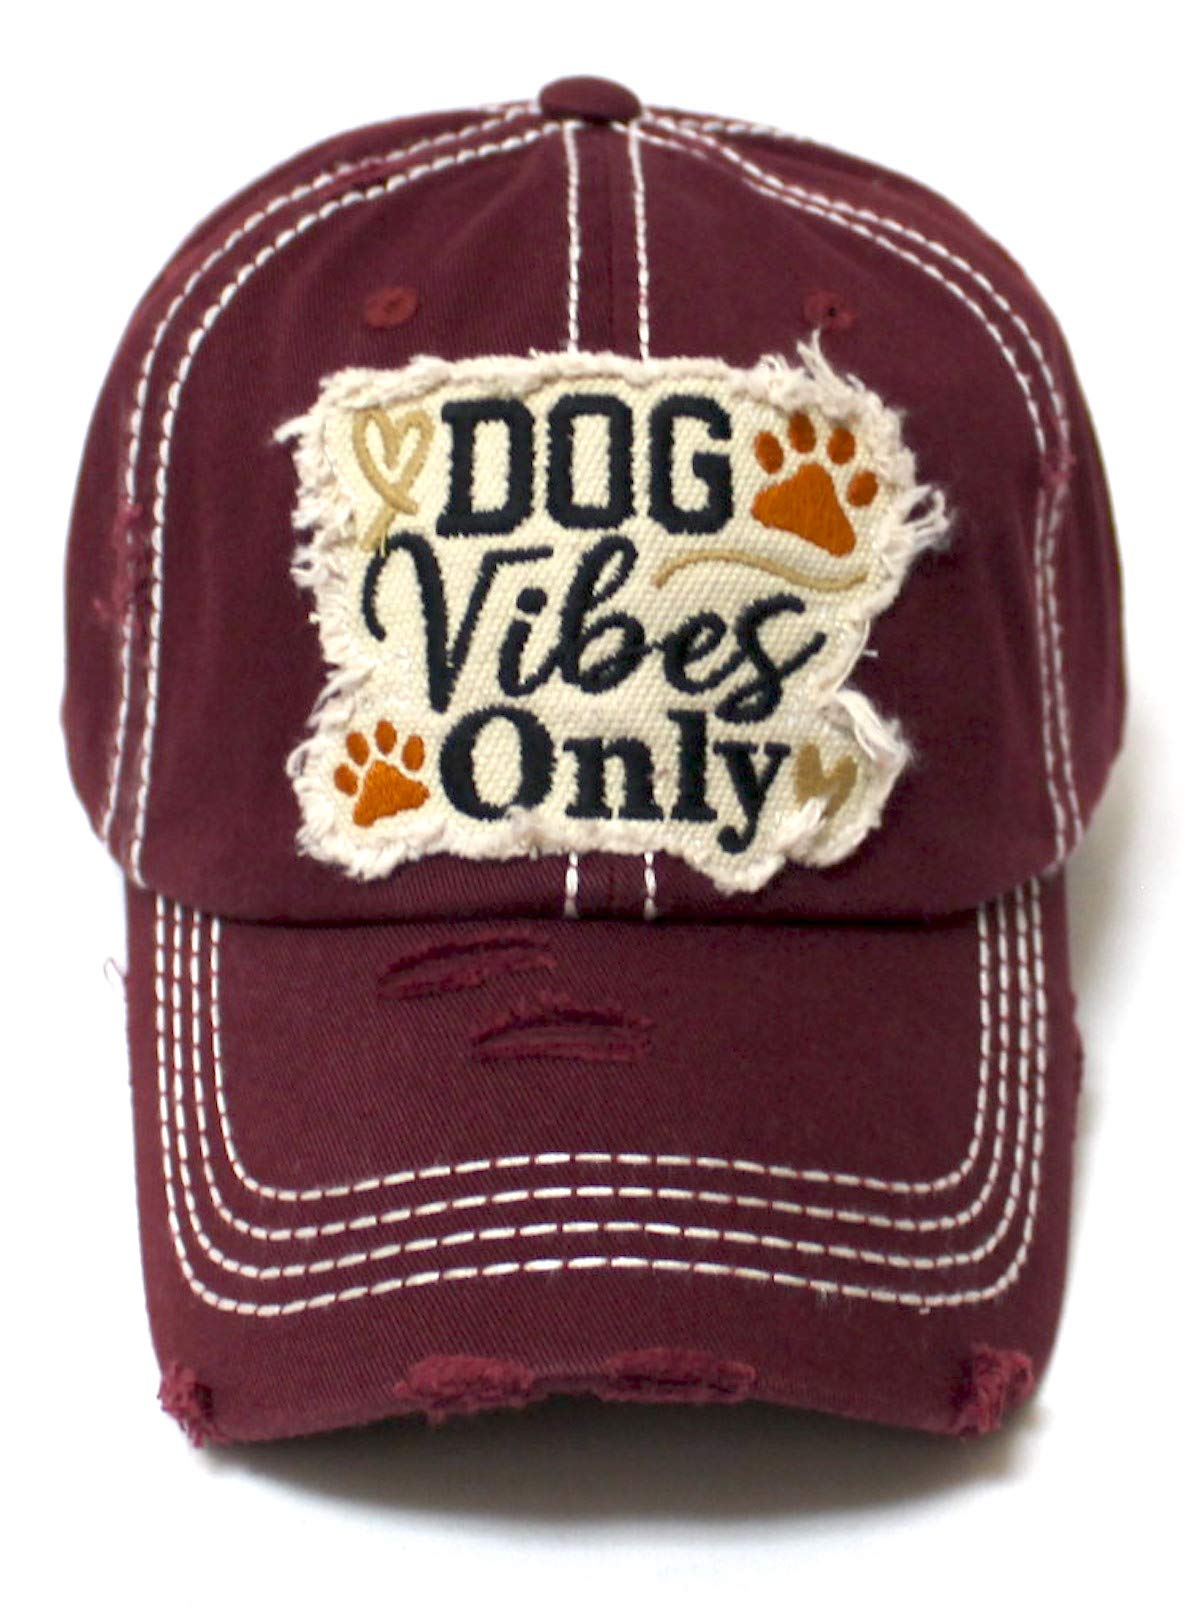 Classic Distressed Adjustable Baseball Cap Dog Vibes Only Hearts, Paws & Bone Monogram Hat, Wine Burgundy - Caps 'N Vintage